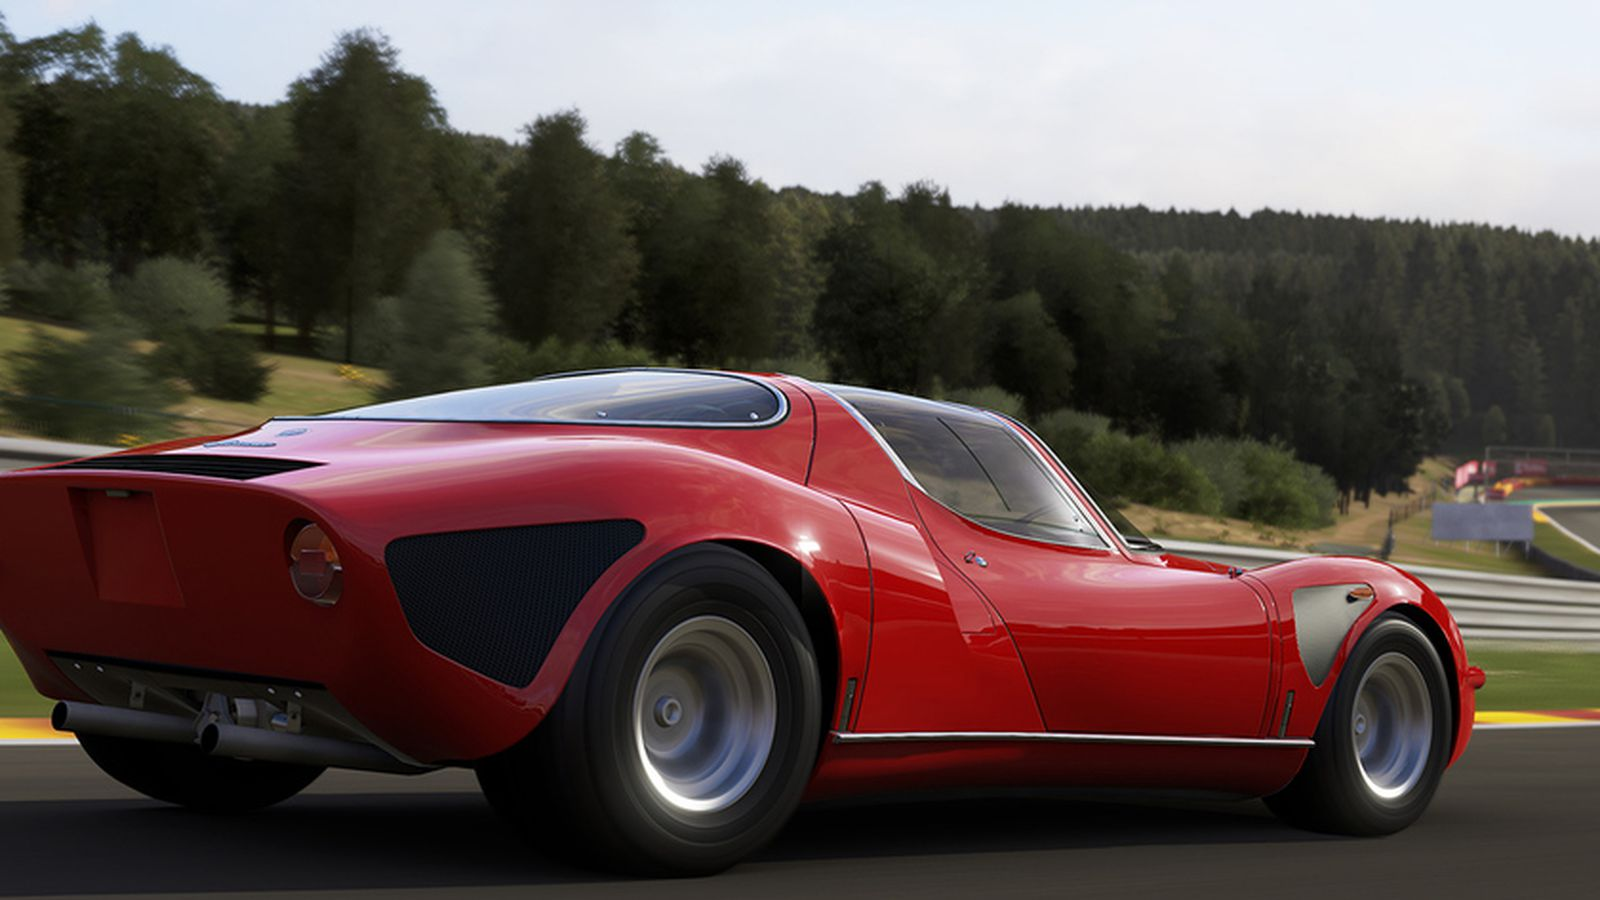 Forza Motorsport 5 Gets 10 New Performance Cars On Feb 4 Polygon